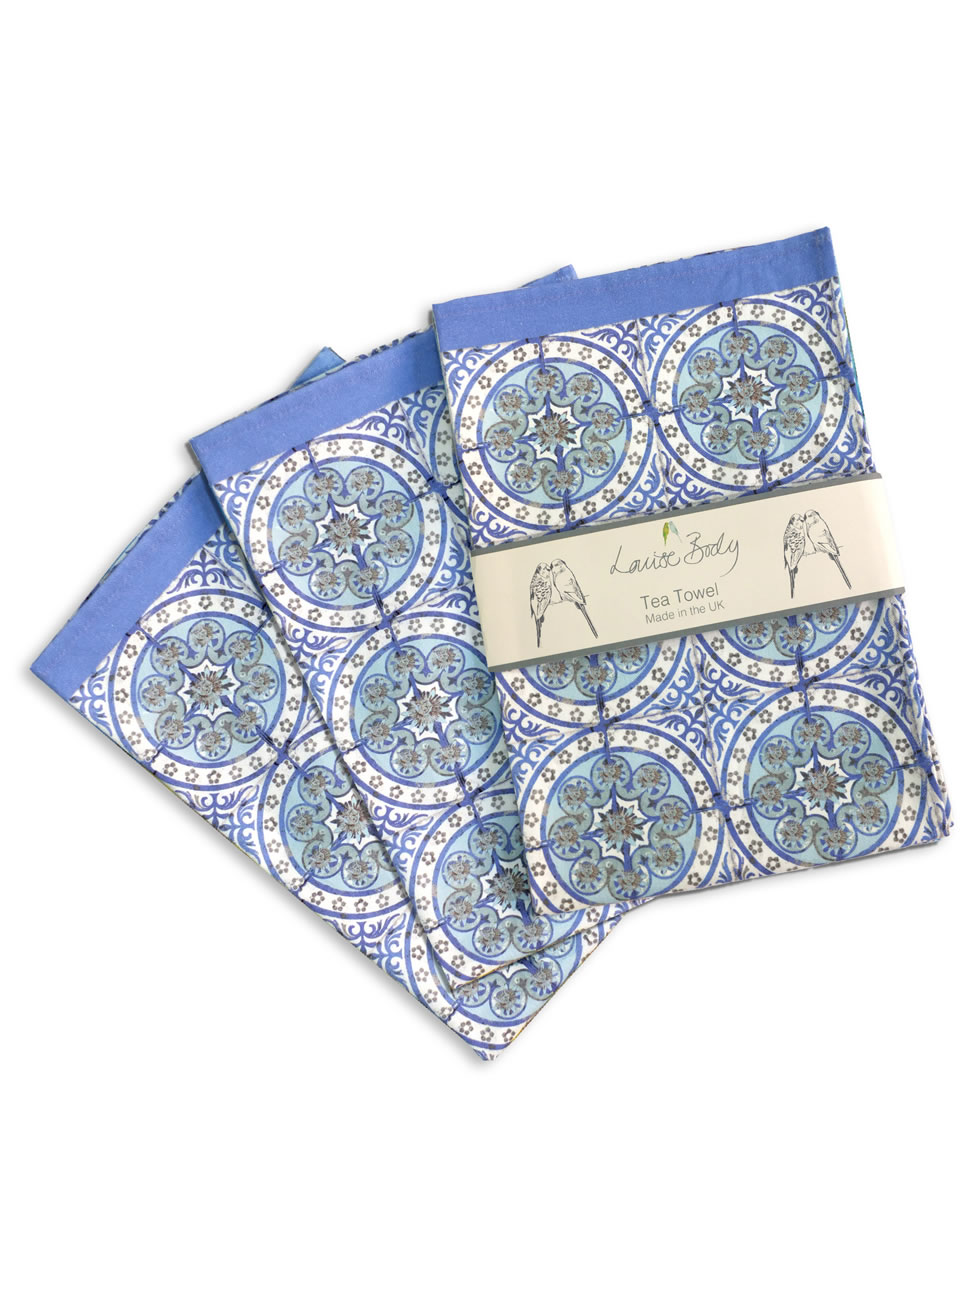 Old Blue tea towel 3 pack